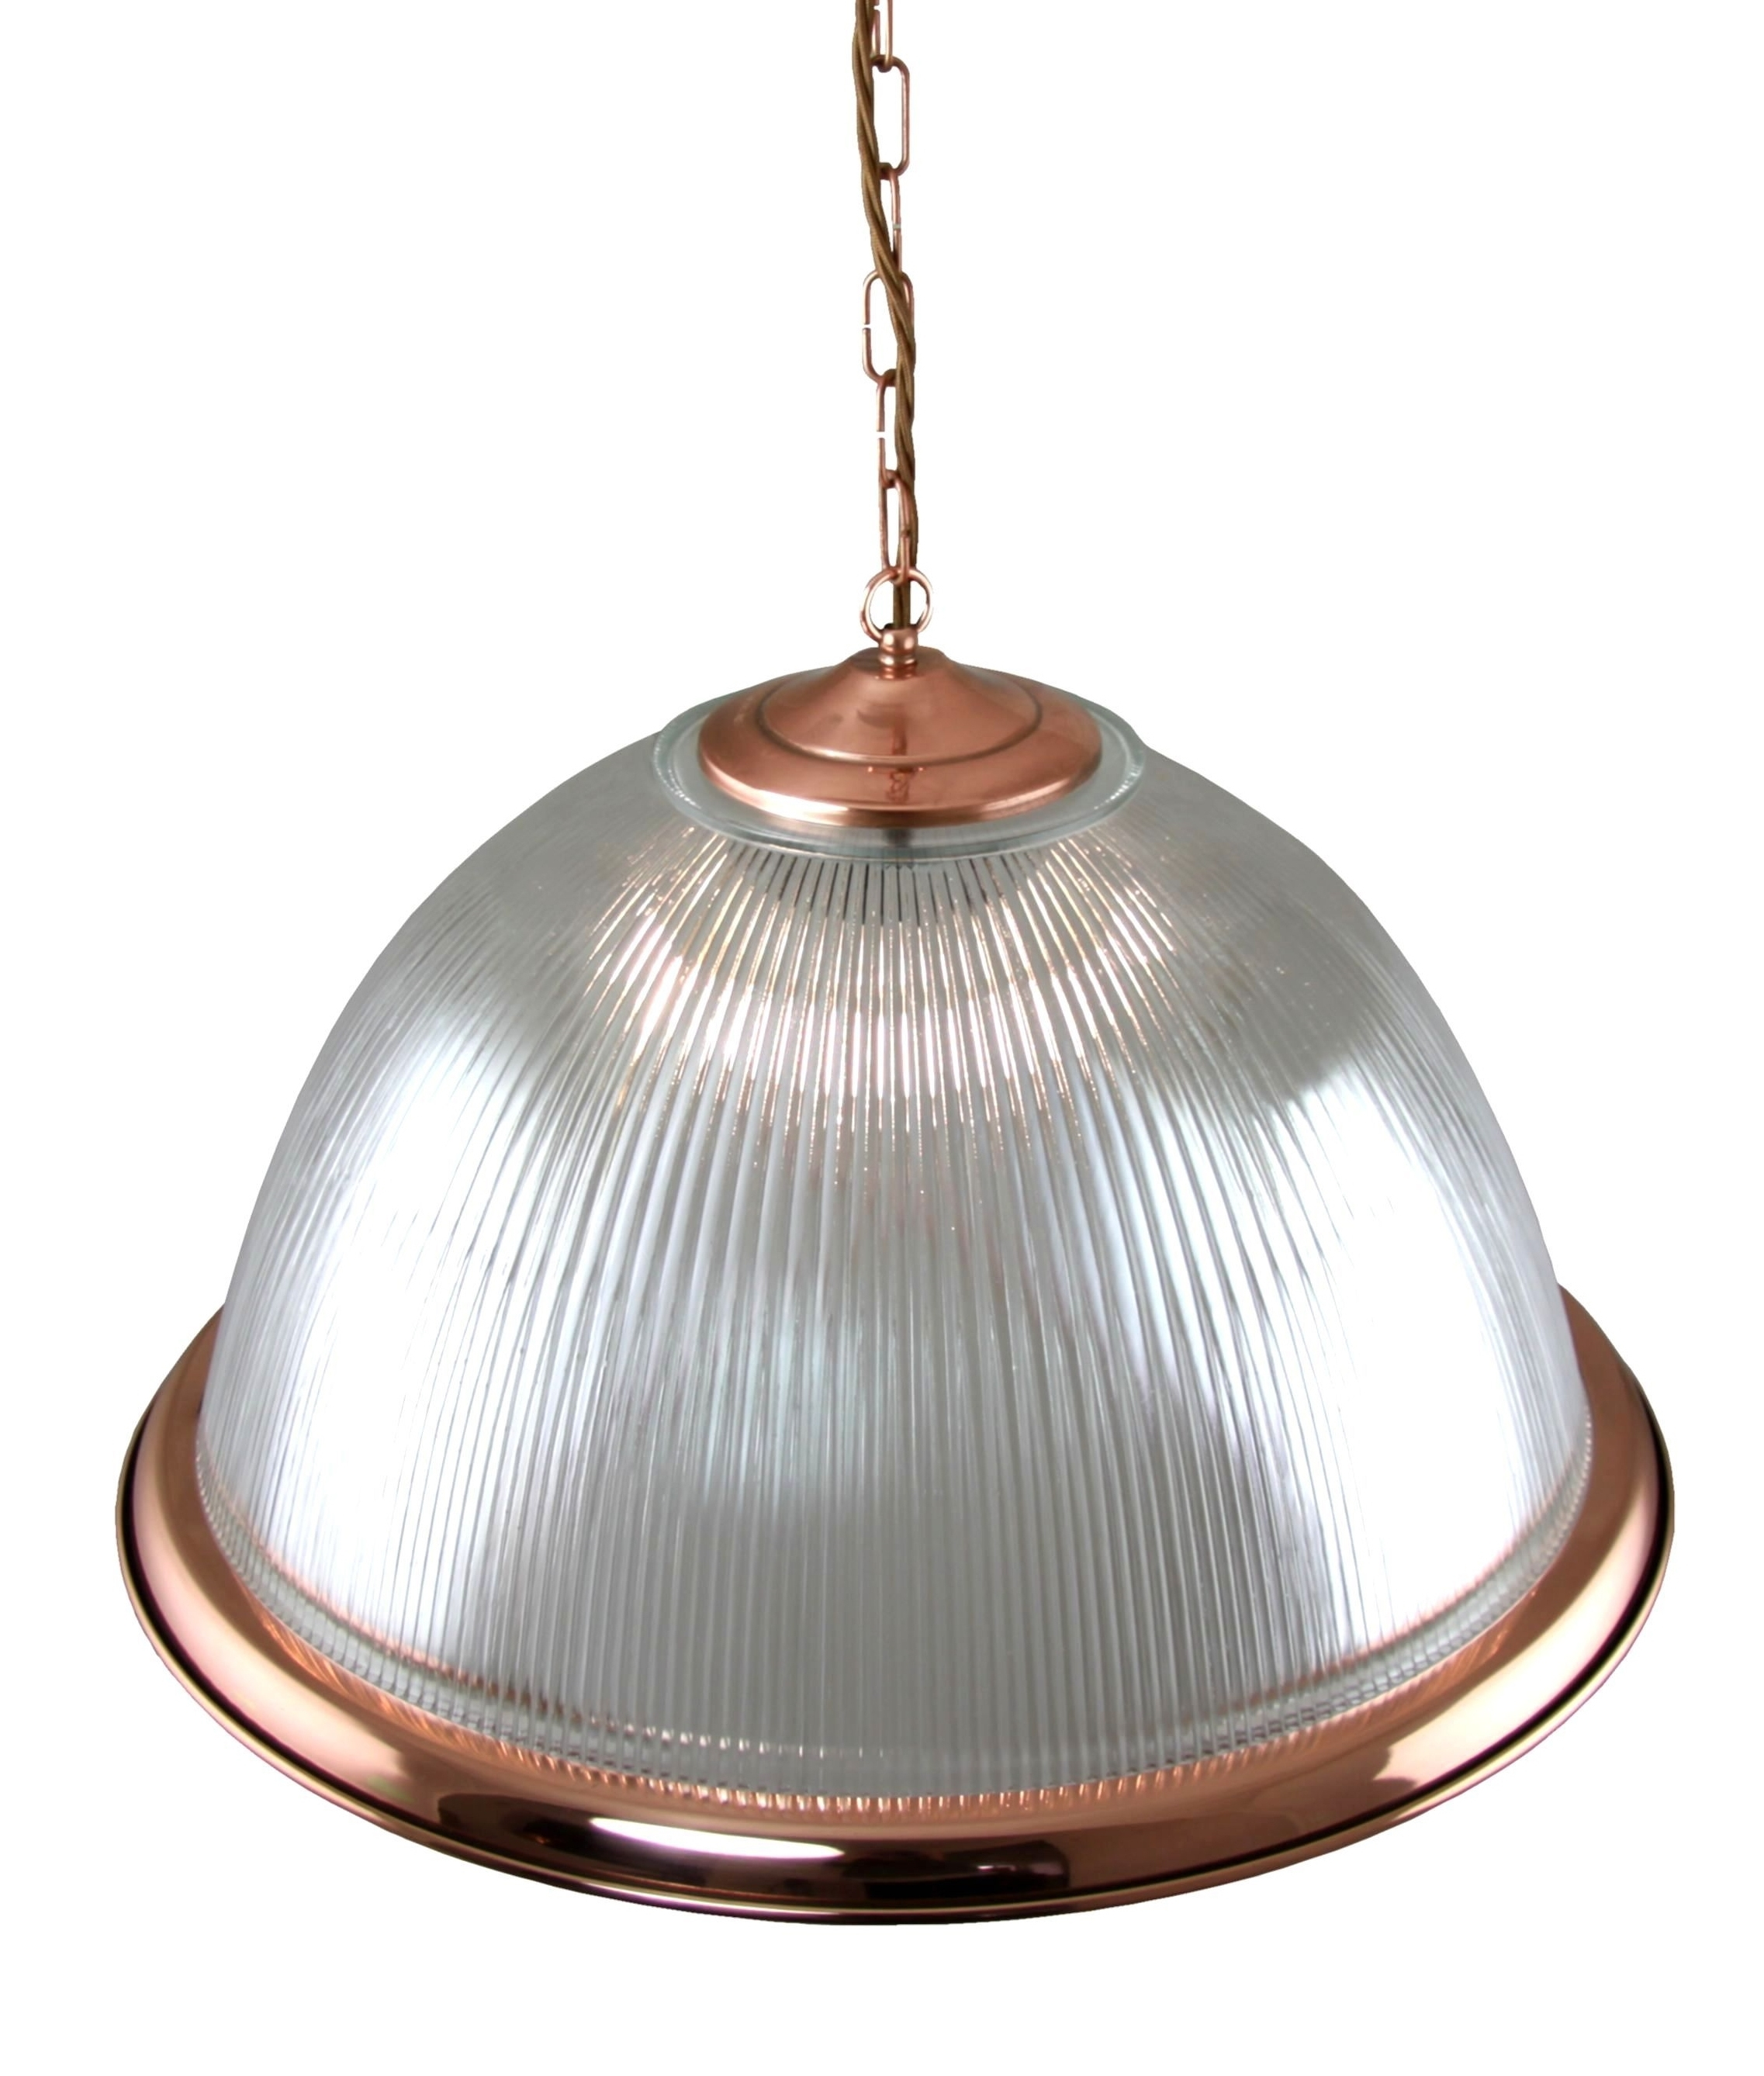 Dome Ribbed Glass Pendant With Copper Detailing In Two Styles